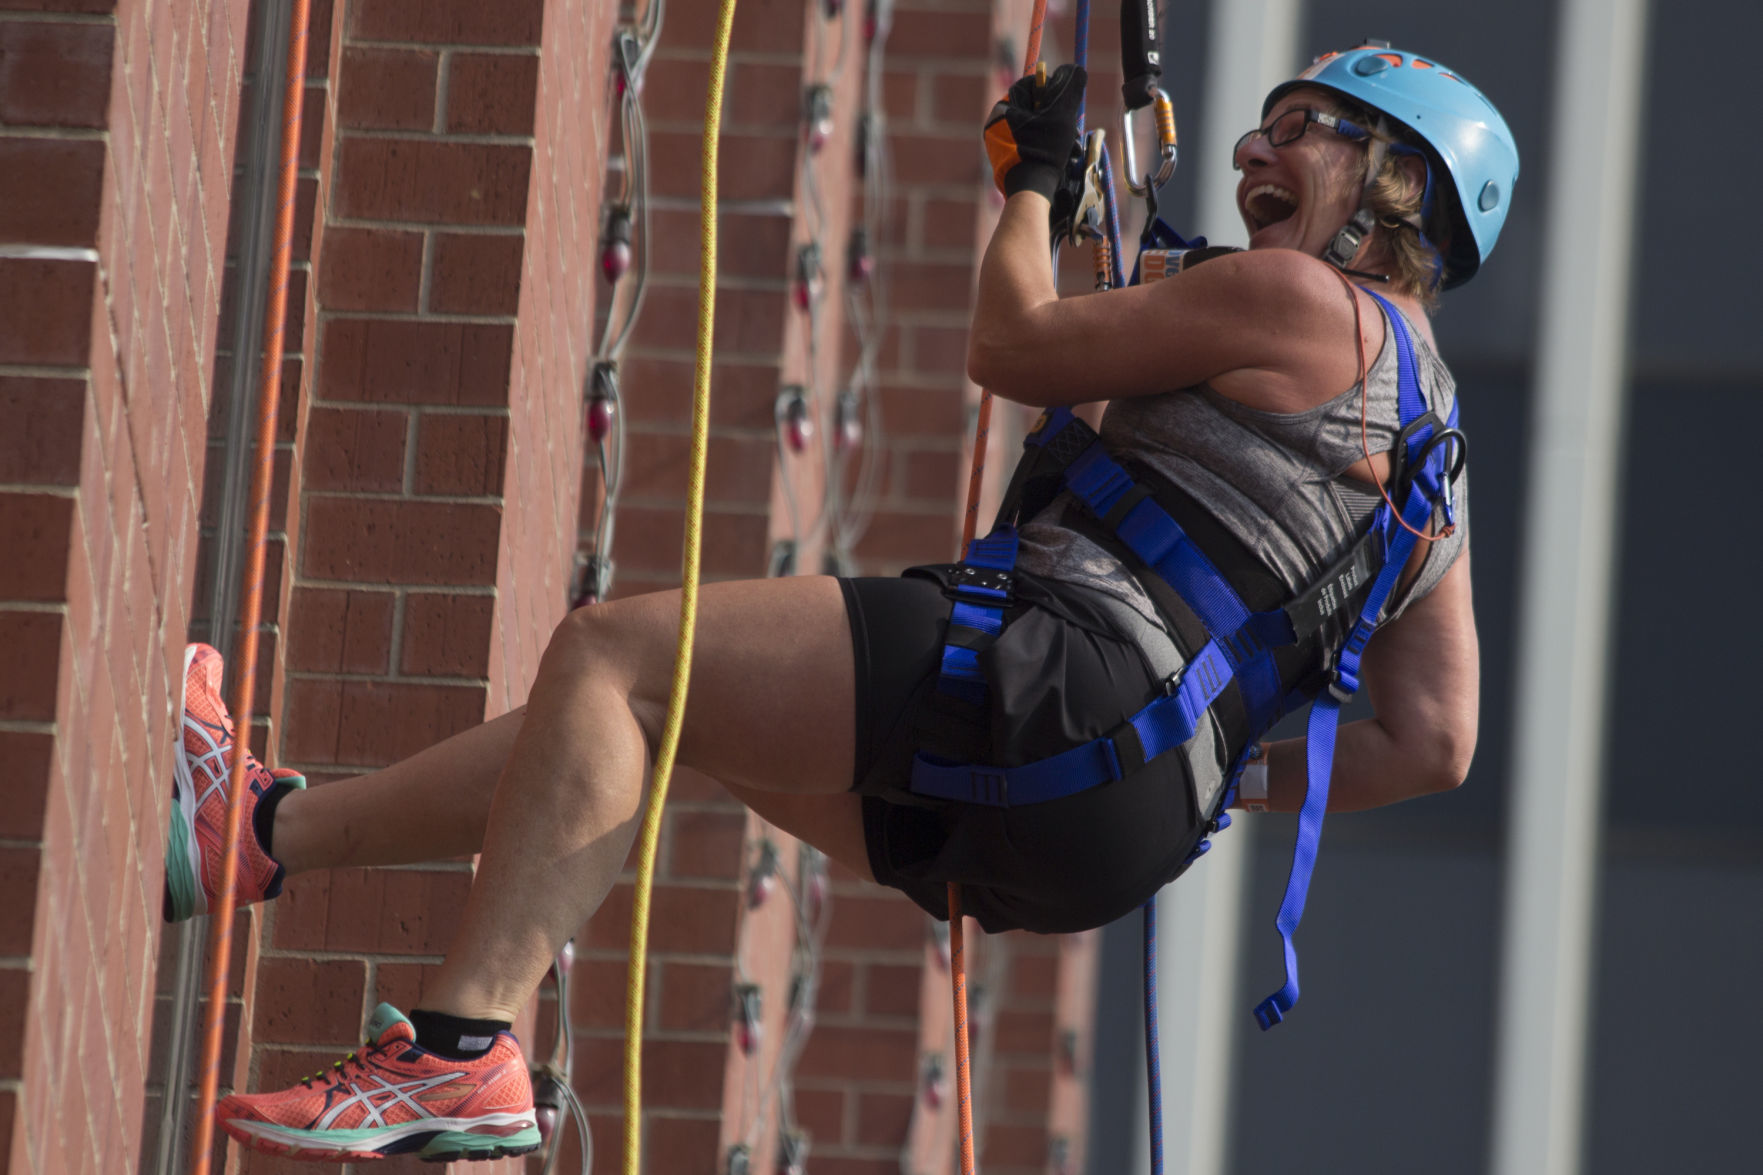 Fundraising event sends participants down the side of Cornhusker hotel | Journal Star